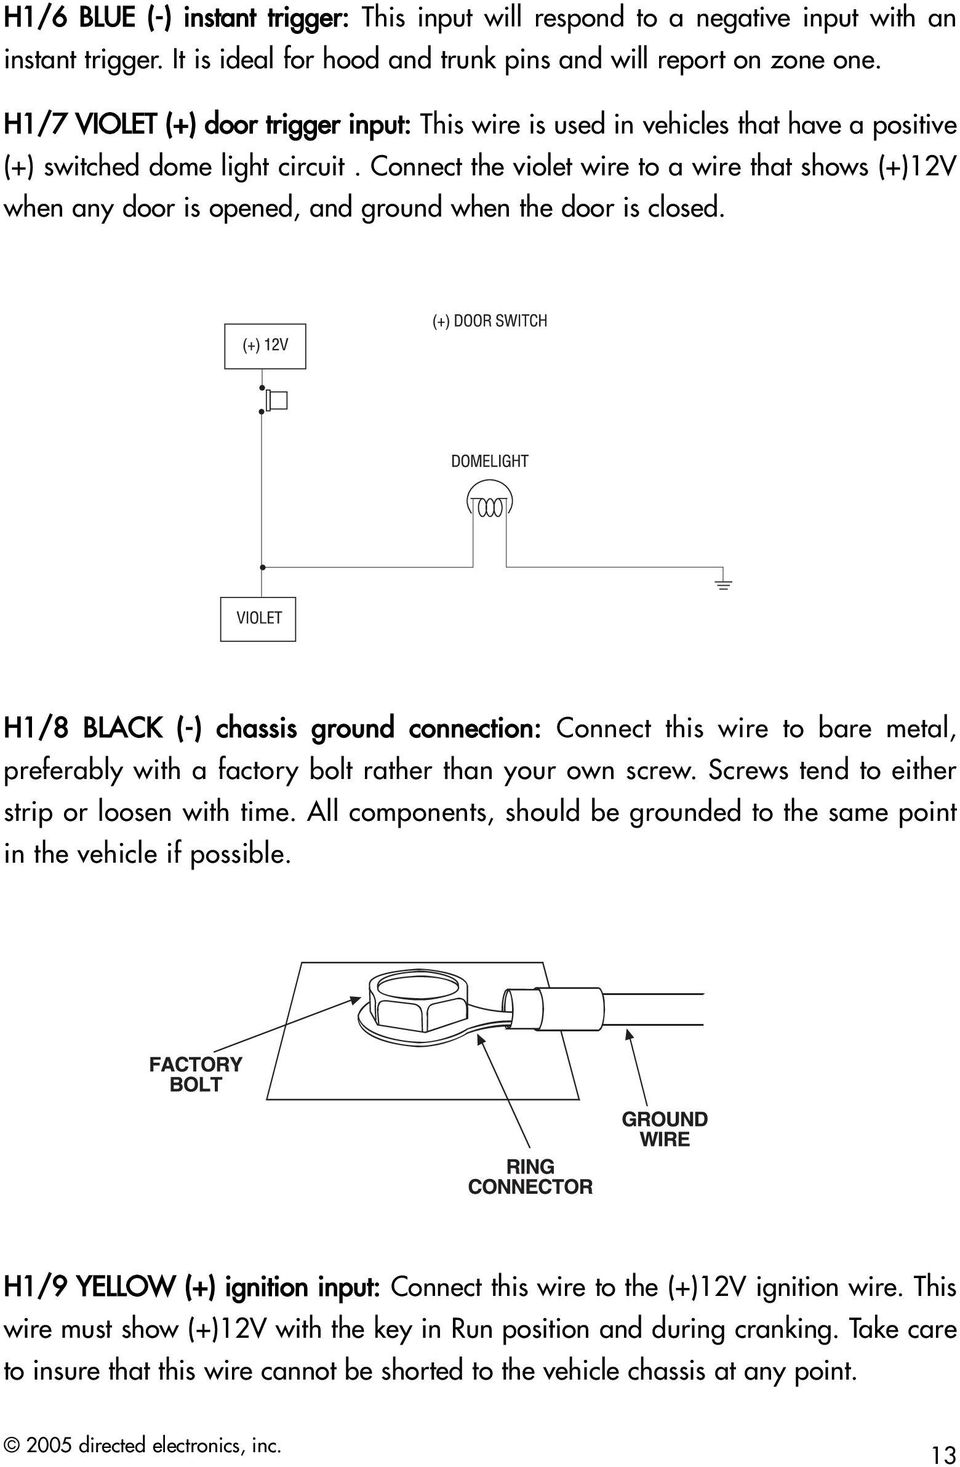 Am1 Security System Installation Guide Pdf 12v Ignition Wiring Diagram Connect The Violet Wire To A That Shows When Any Door